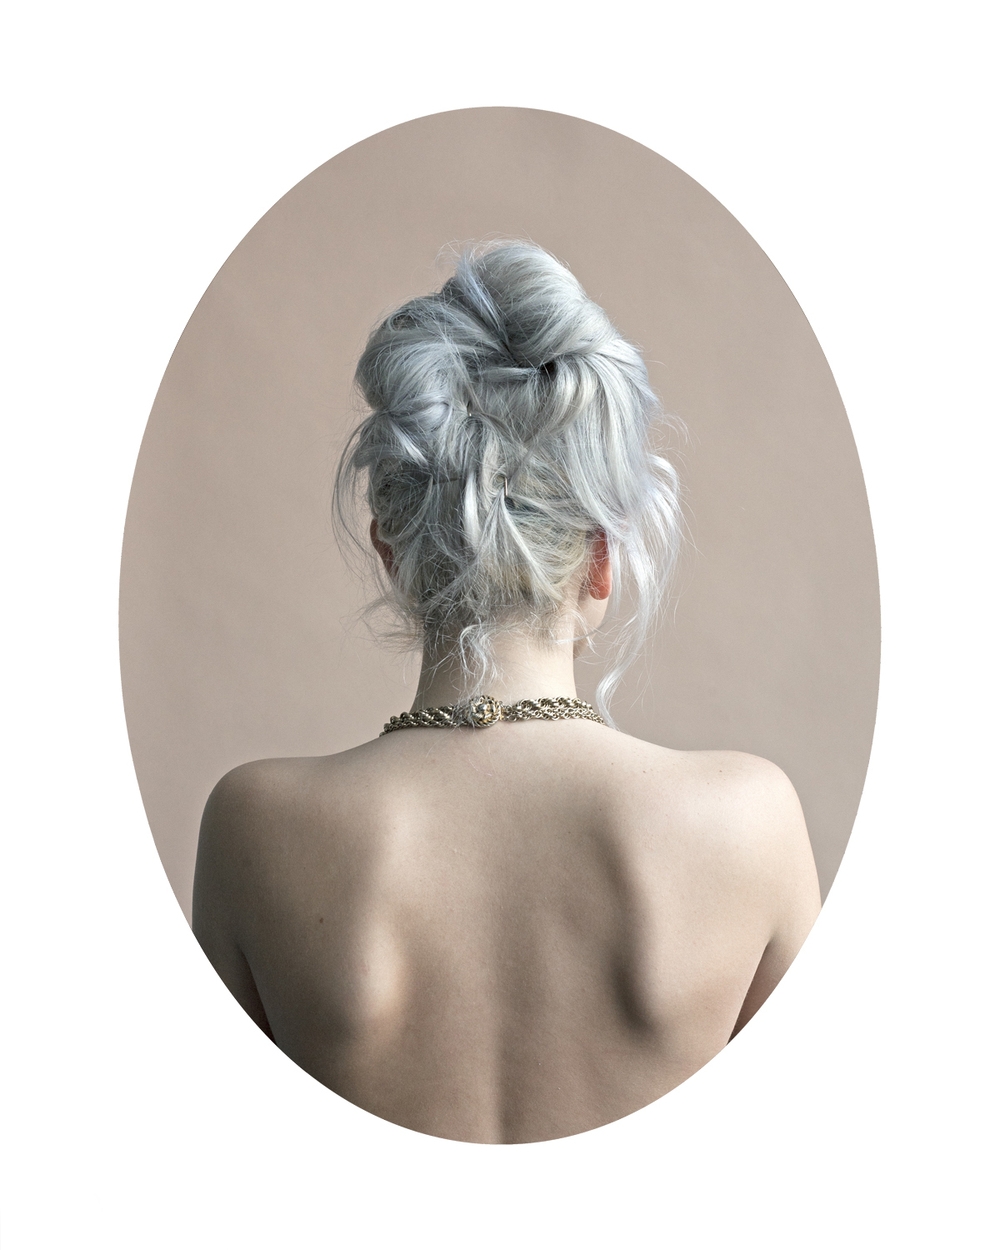 Devon (Silver) from the series A Modern Hair Study, Tara Bogart